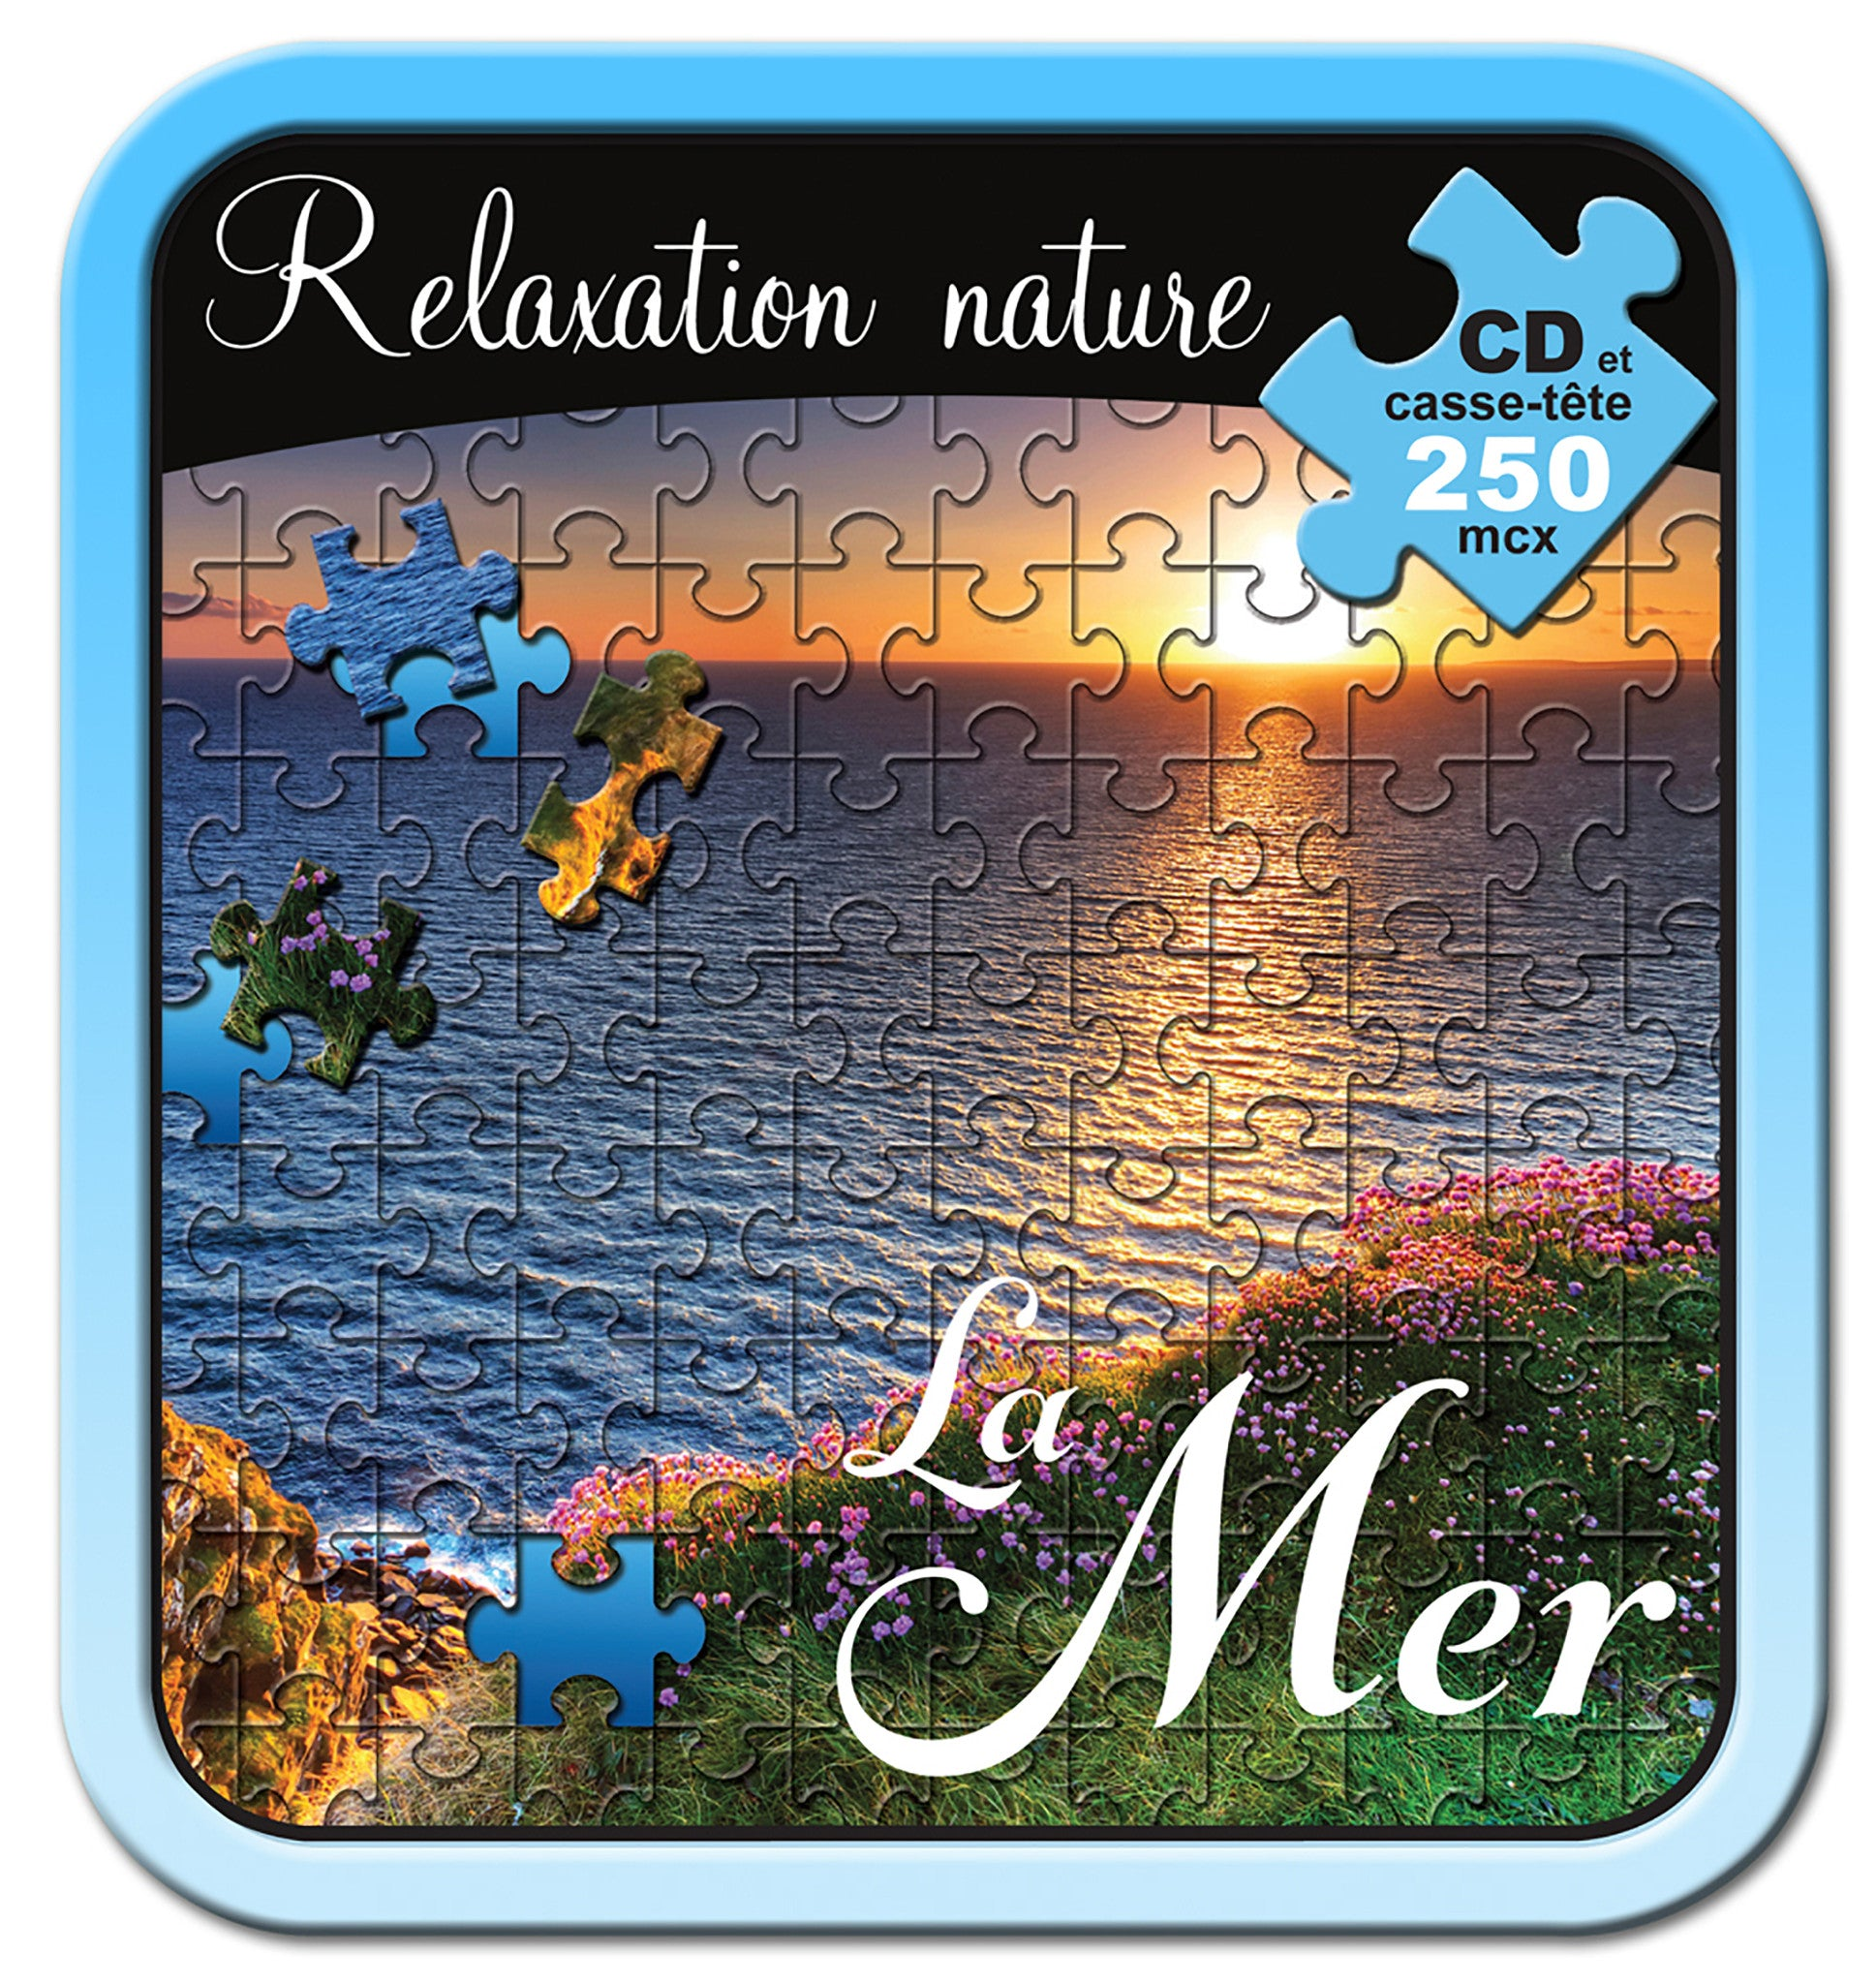 Relaxation Nature La Mer - CD/CASSE-TÊTE